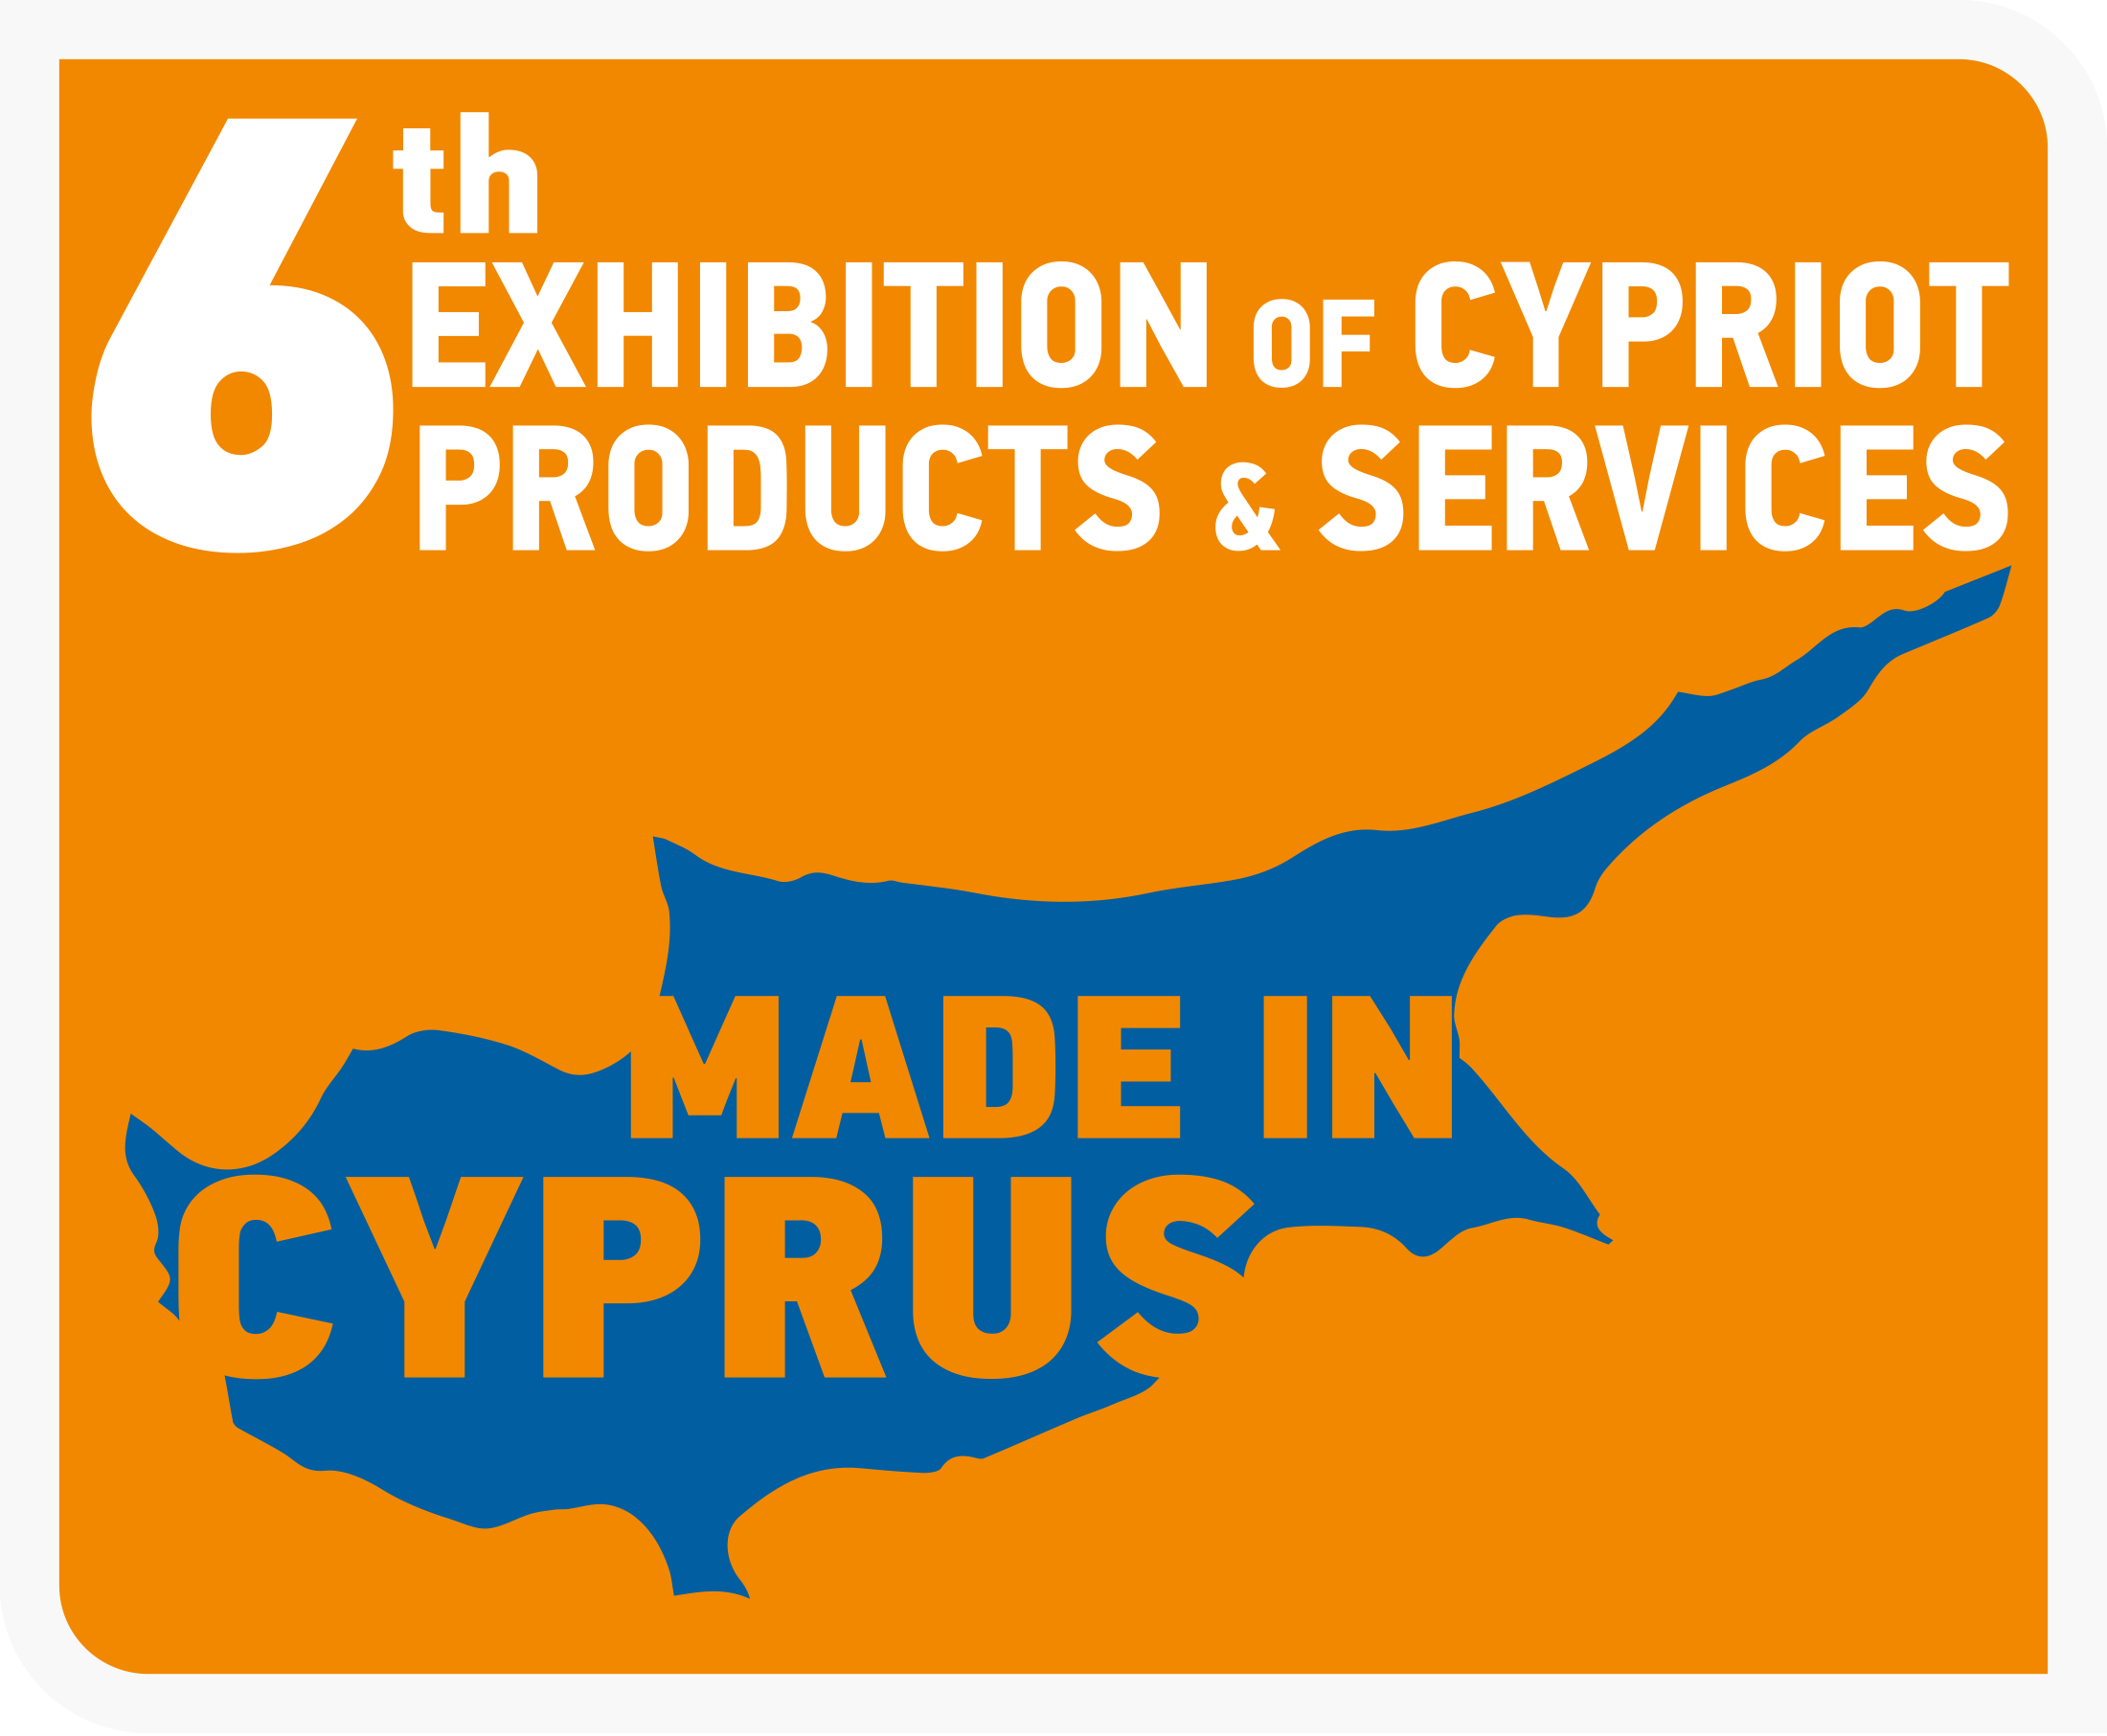 6th Made in Cyprus Exhibition | 27-29 Sept 2019